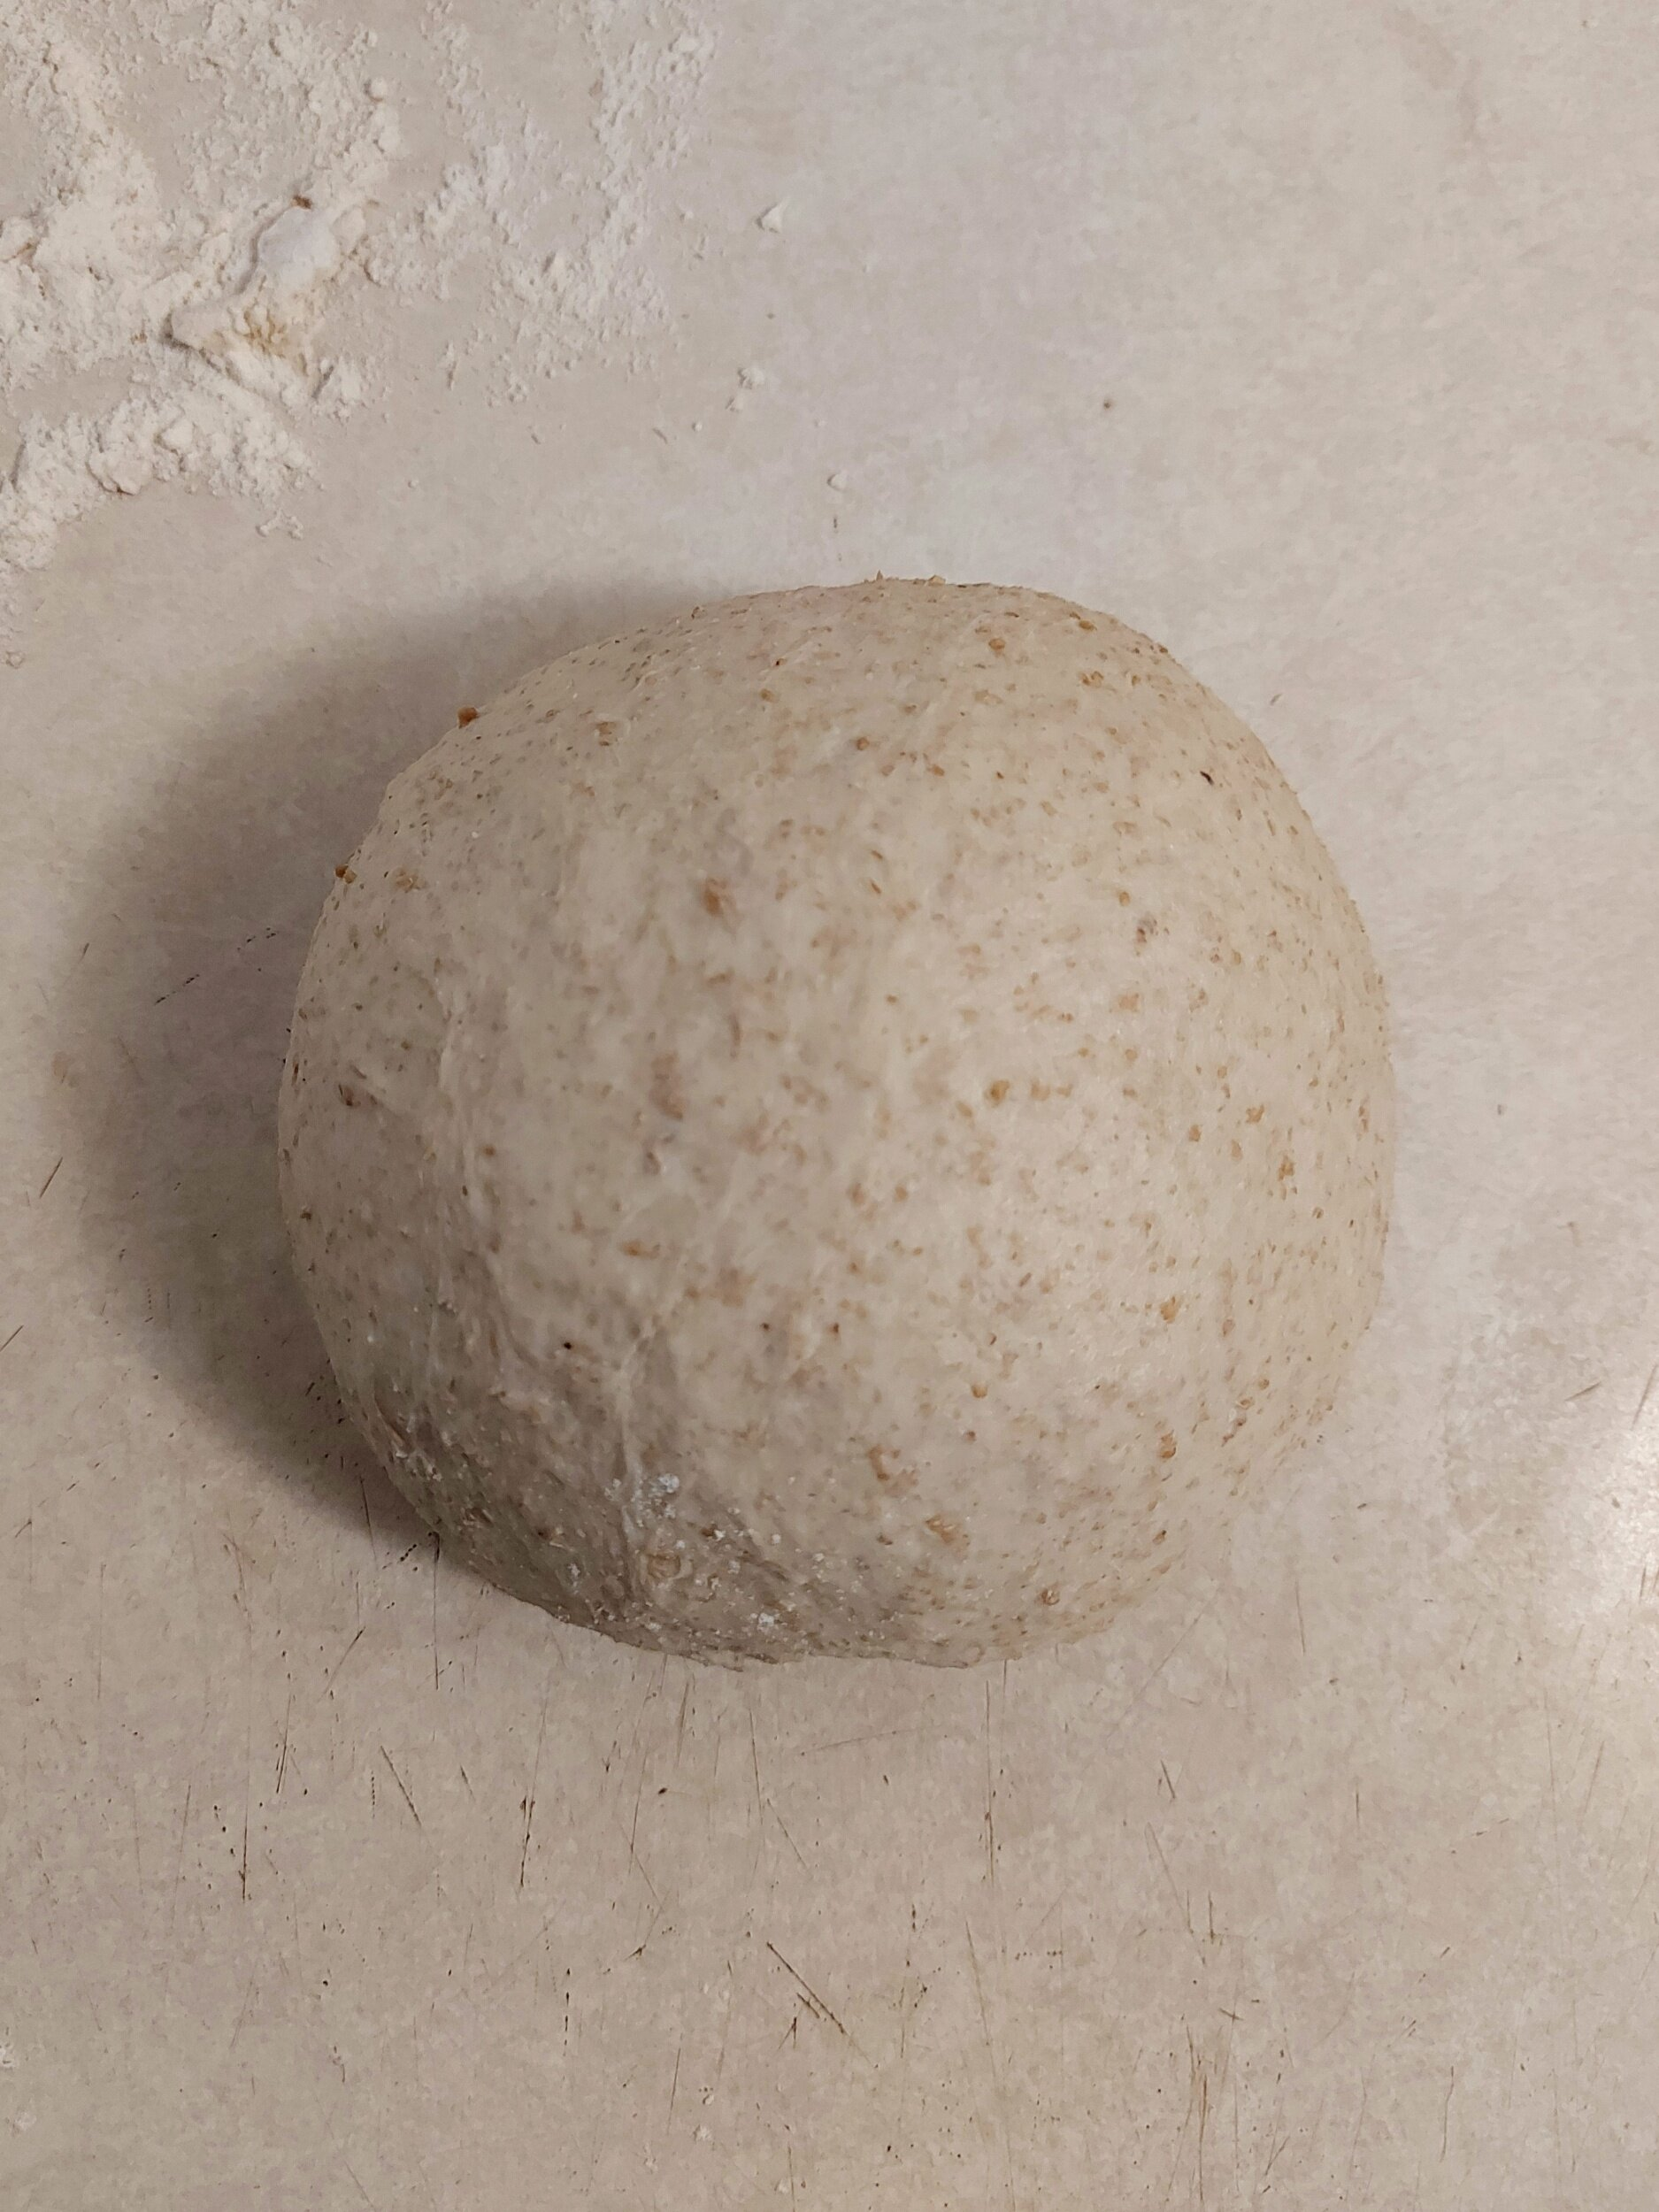 After Kneading